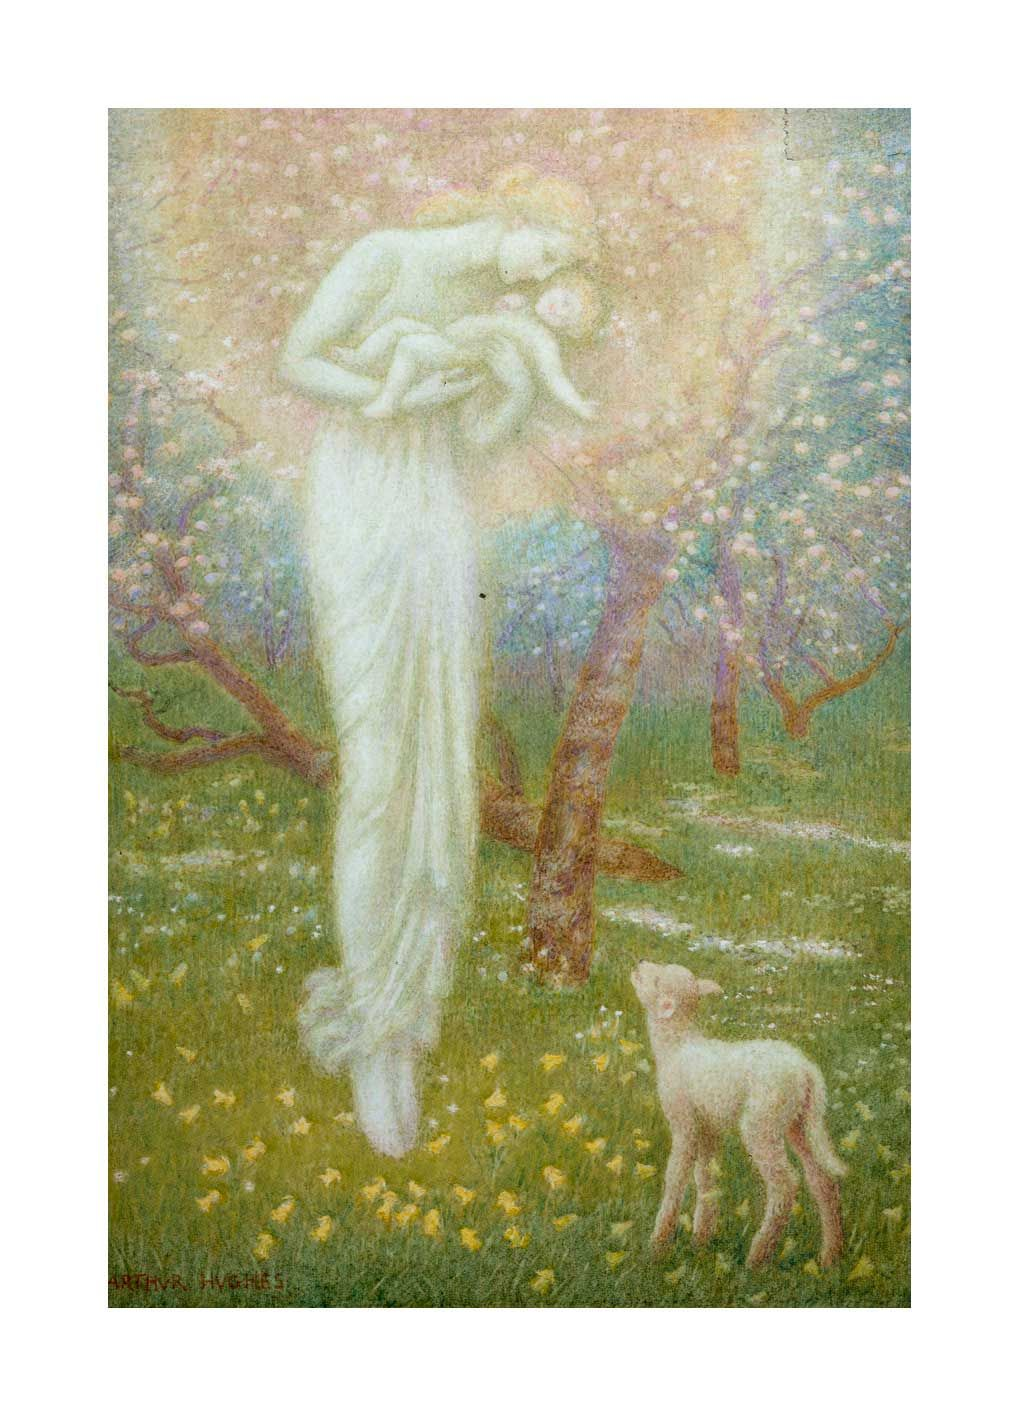 'Little Lamb, Who Made Thee?' by Arthur Hughes. Giclee